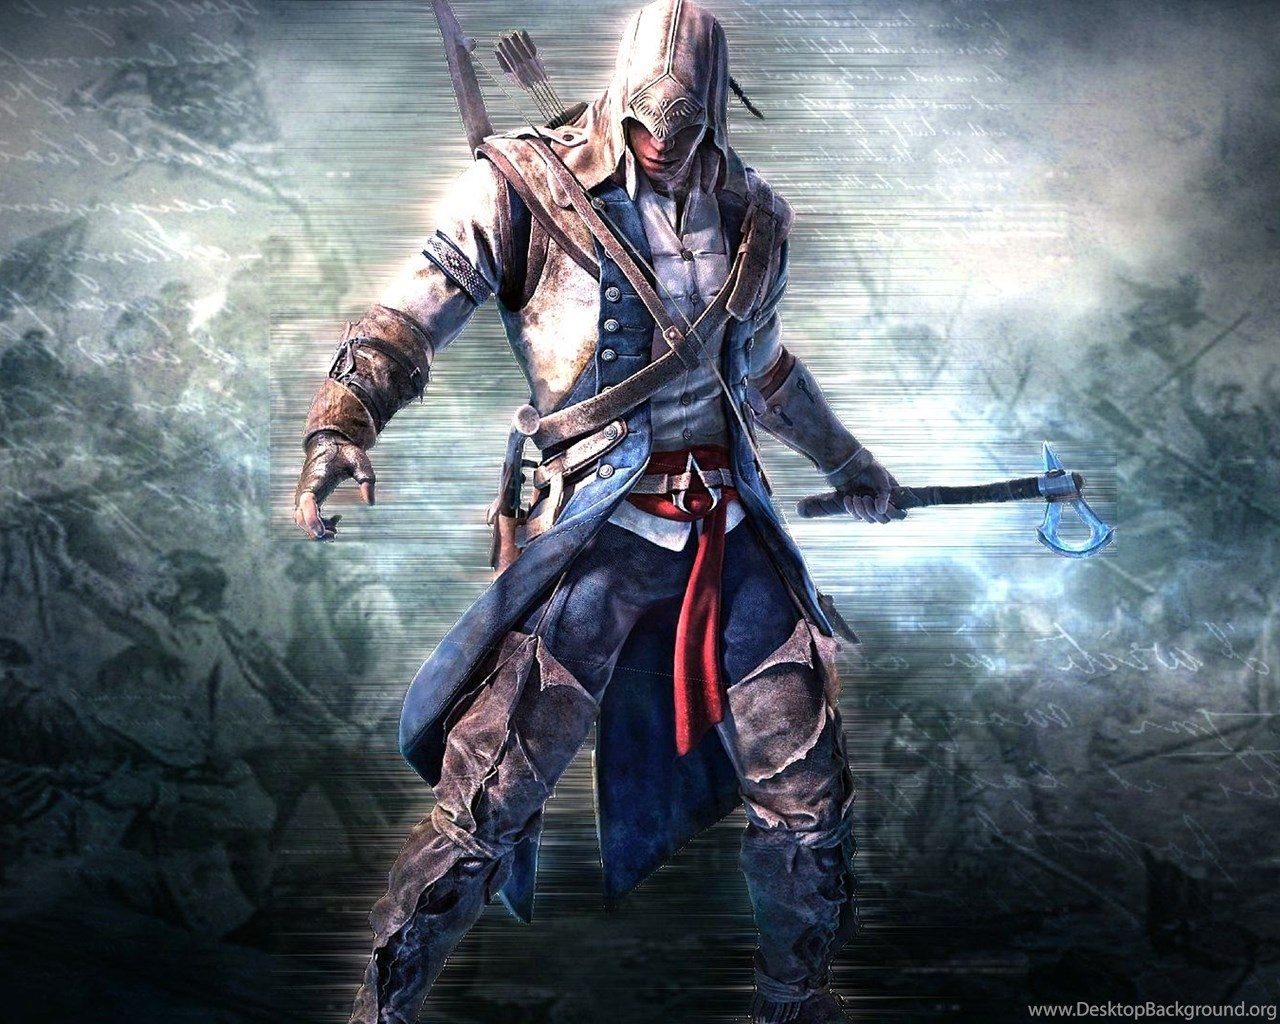 Assassins Creed Game Hd Desktop Wallpaper Jpg Desktop Background